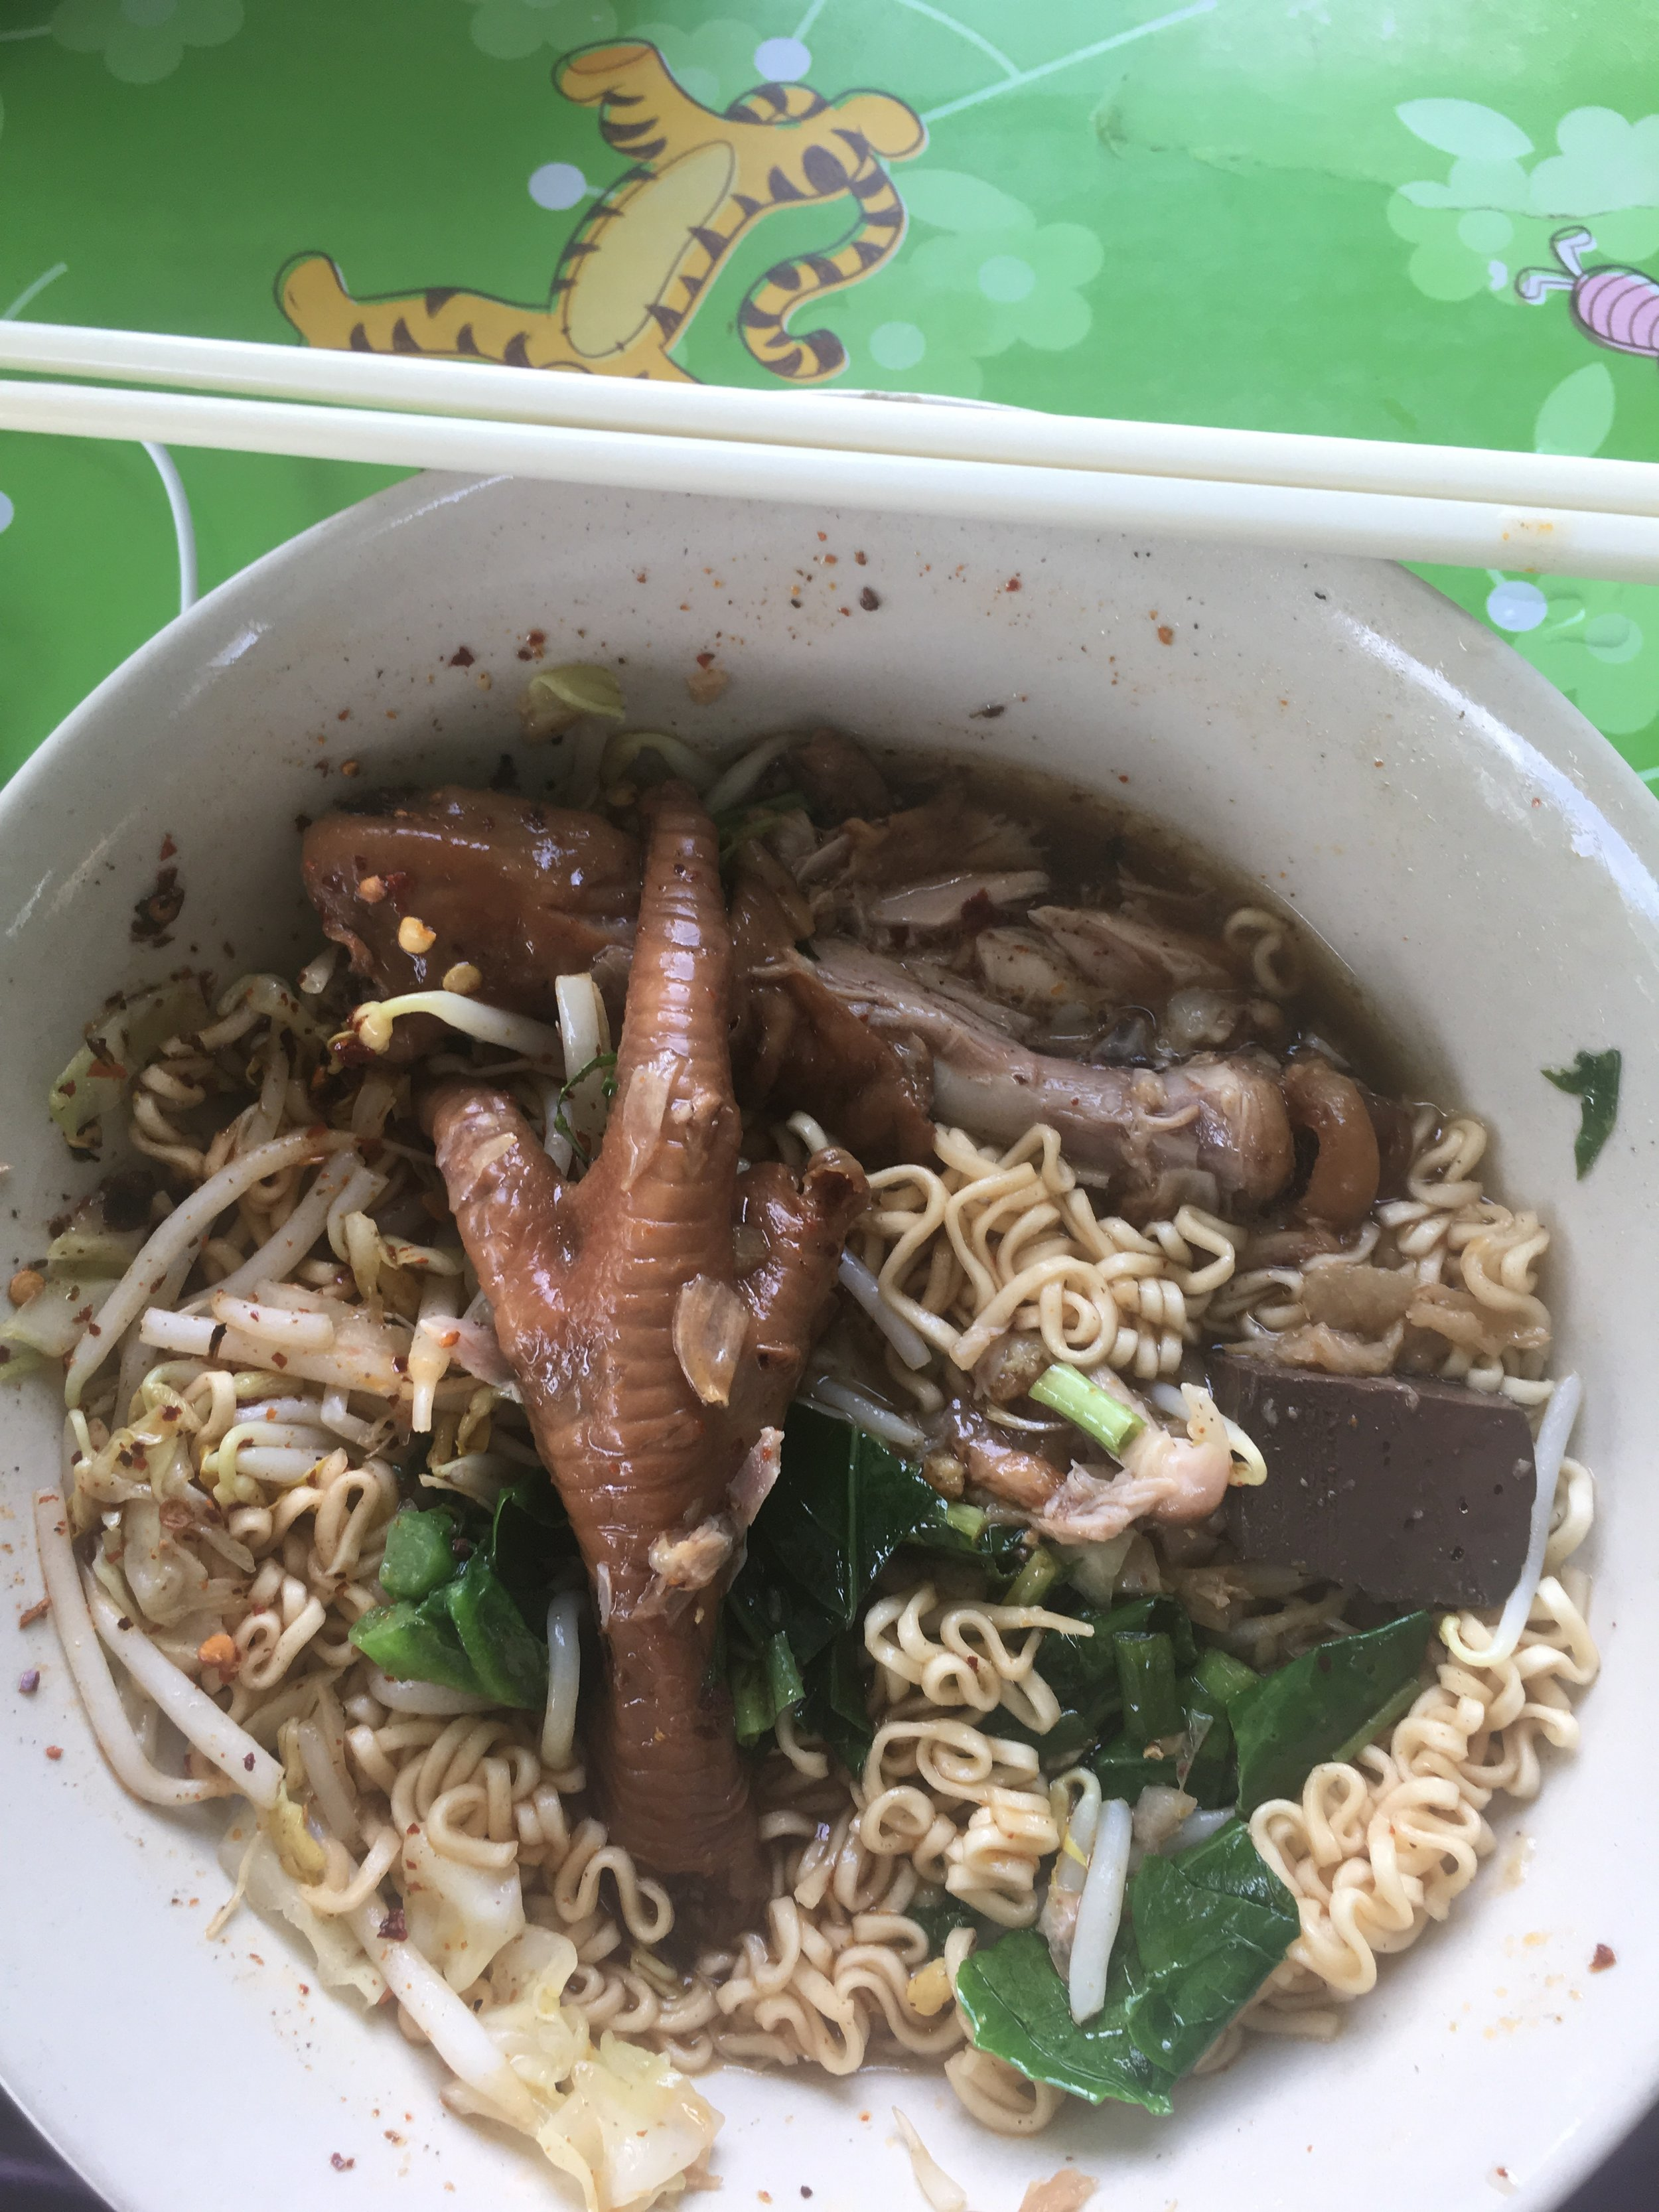 Instant noodle, cow blood, cow blood jelly and chicken feet soup. Instant noodles, when used in the right way can create a great meal. Notice the Winnie the Pooh table mat. This restaurant was on the side of a fairly quiet road.